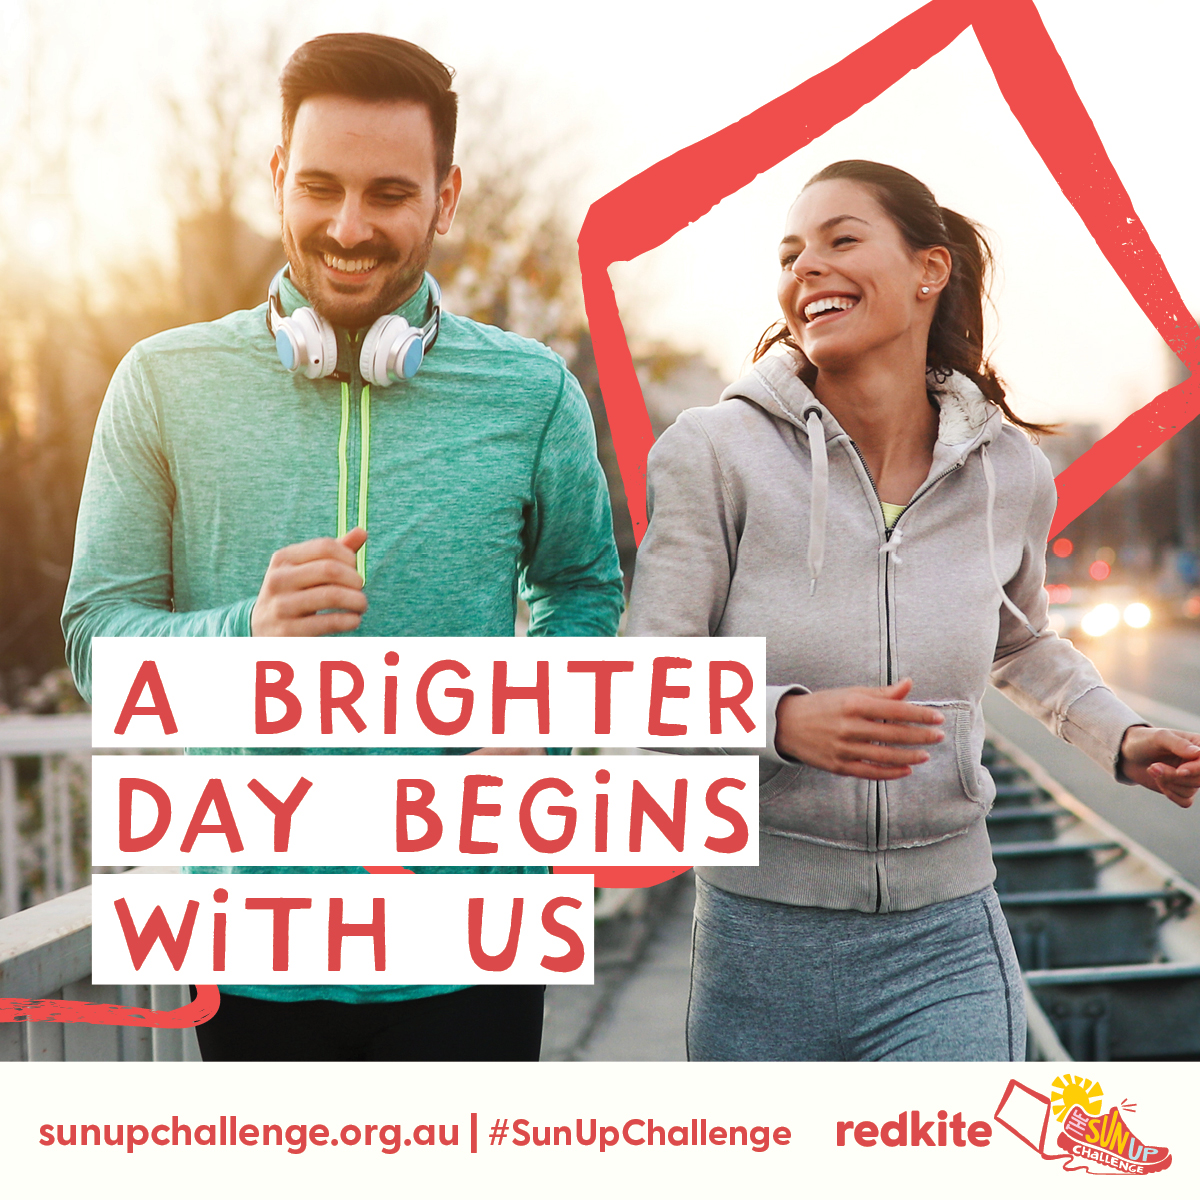 A Brighter Day Starts With Us (footer)